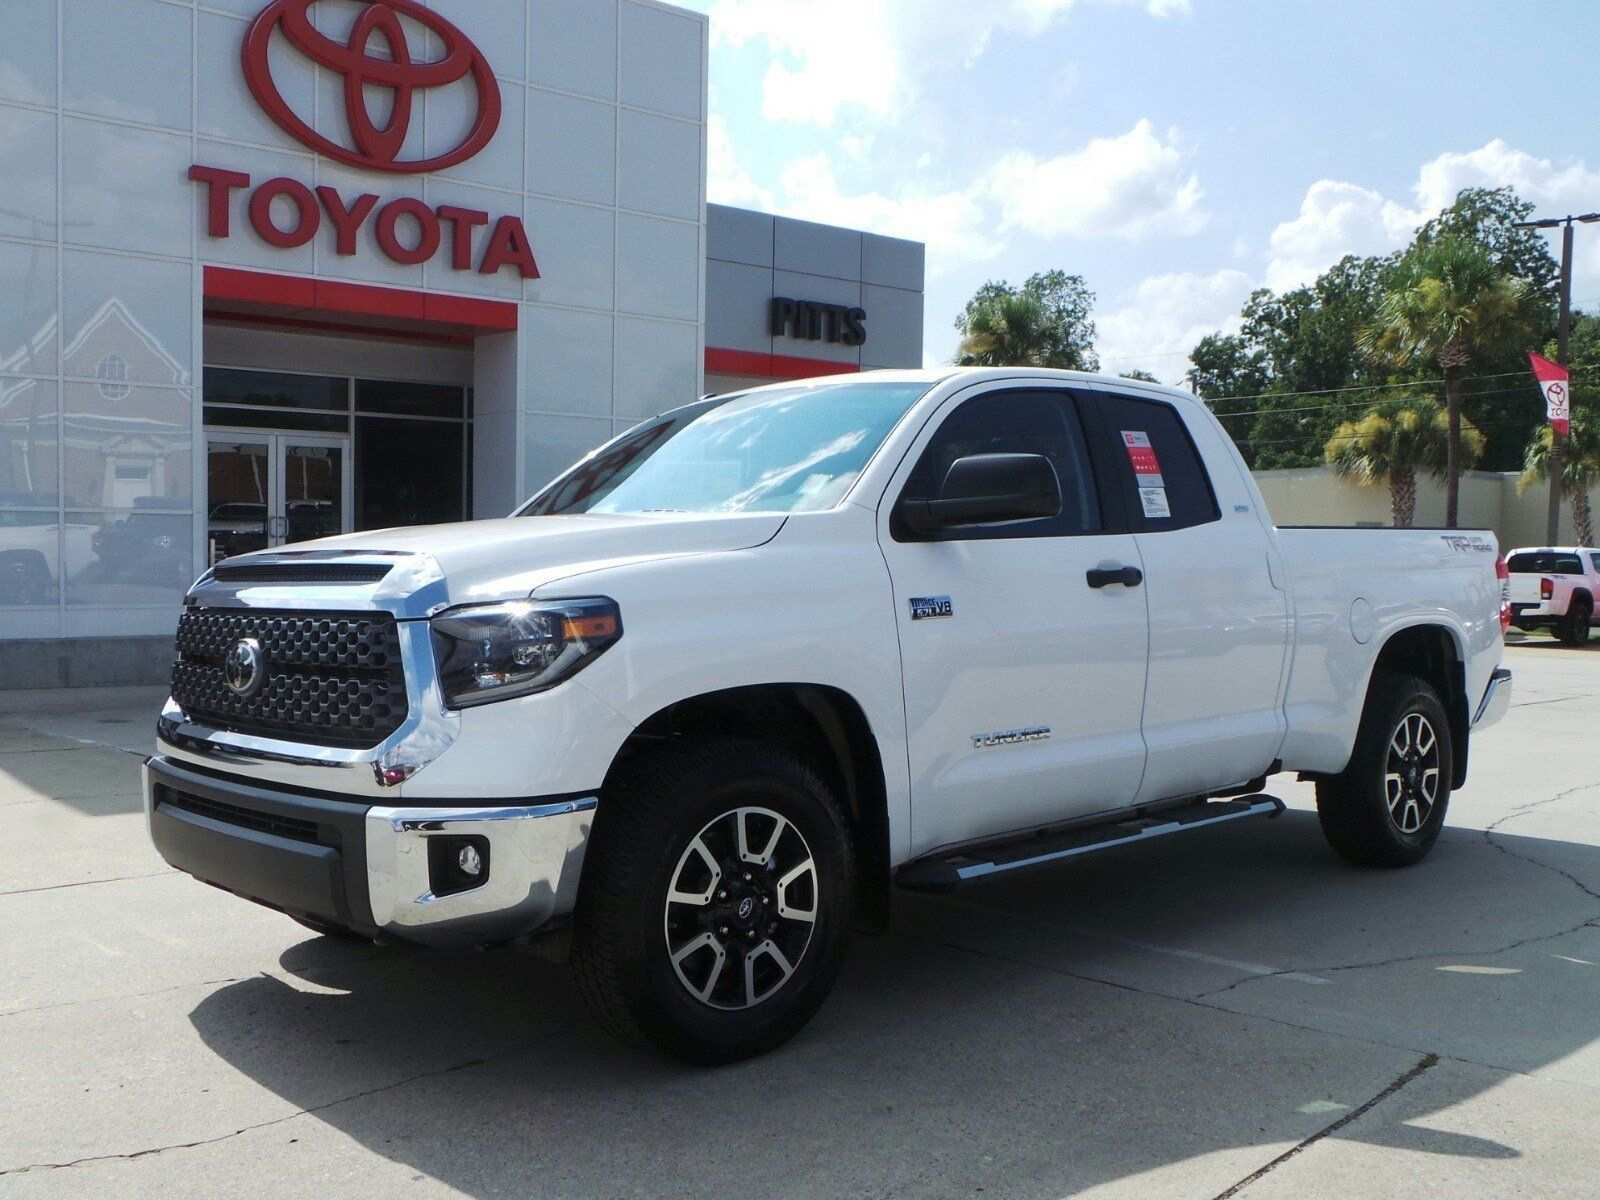 77 Concept of 2019 Toyota Tundra Concept Model for 2019 Toyota Tundra Concept